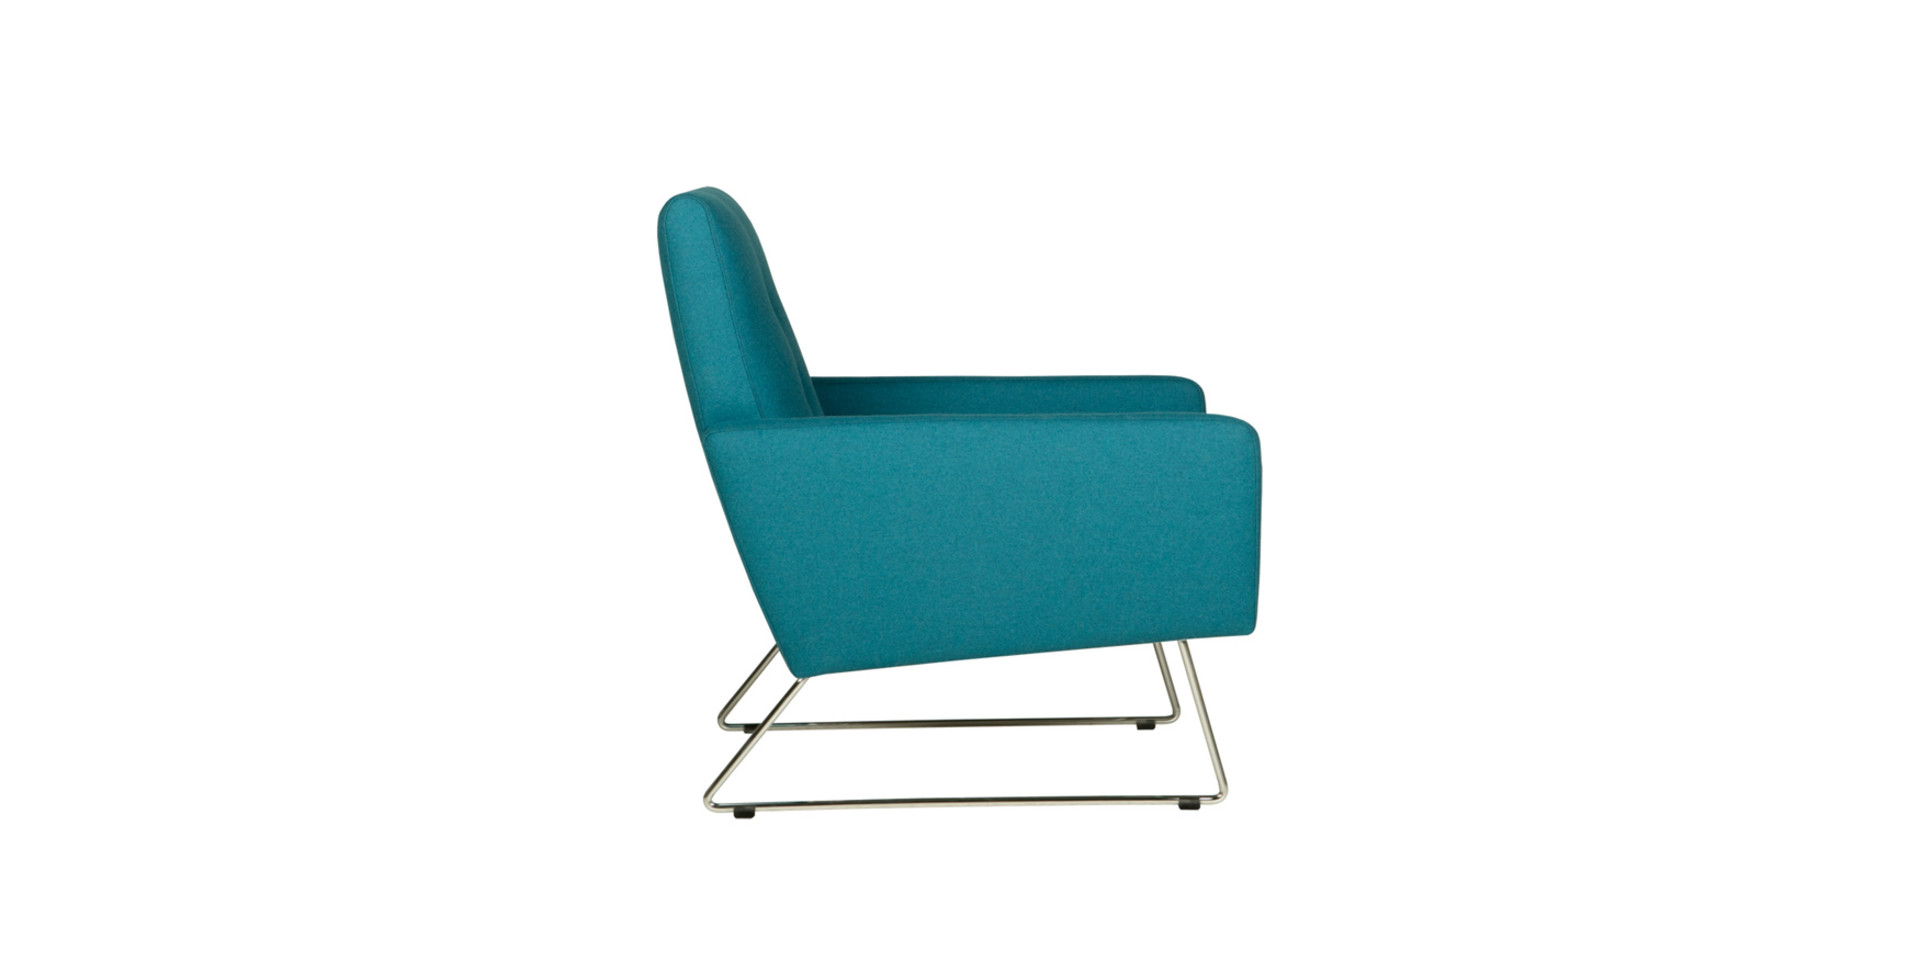 sits-max-fauteuil-armchair_buttons_panno2240_turquoise_3